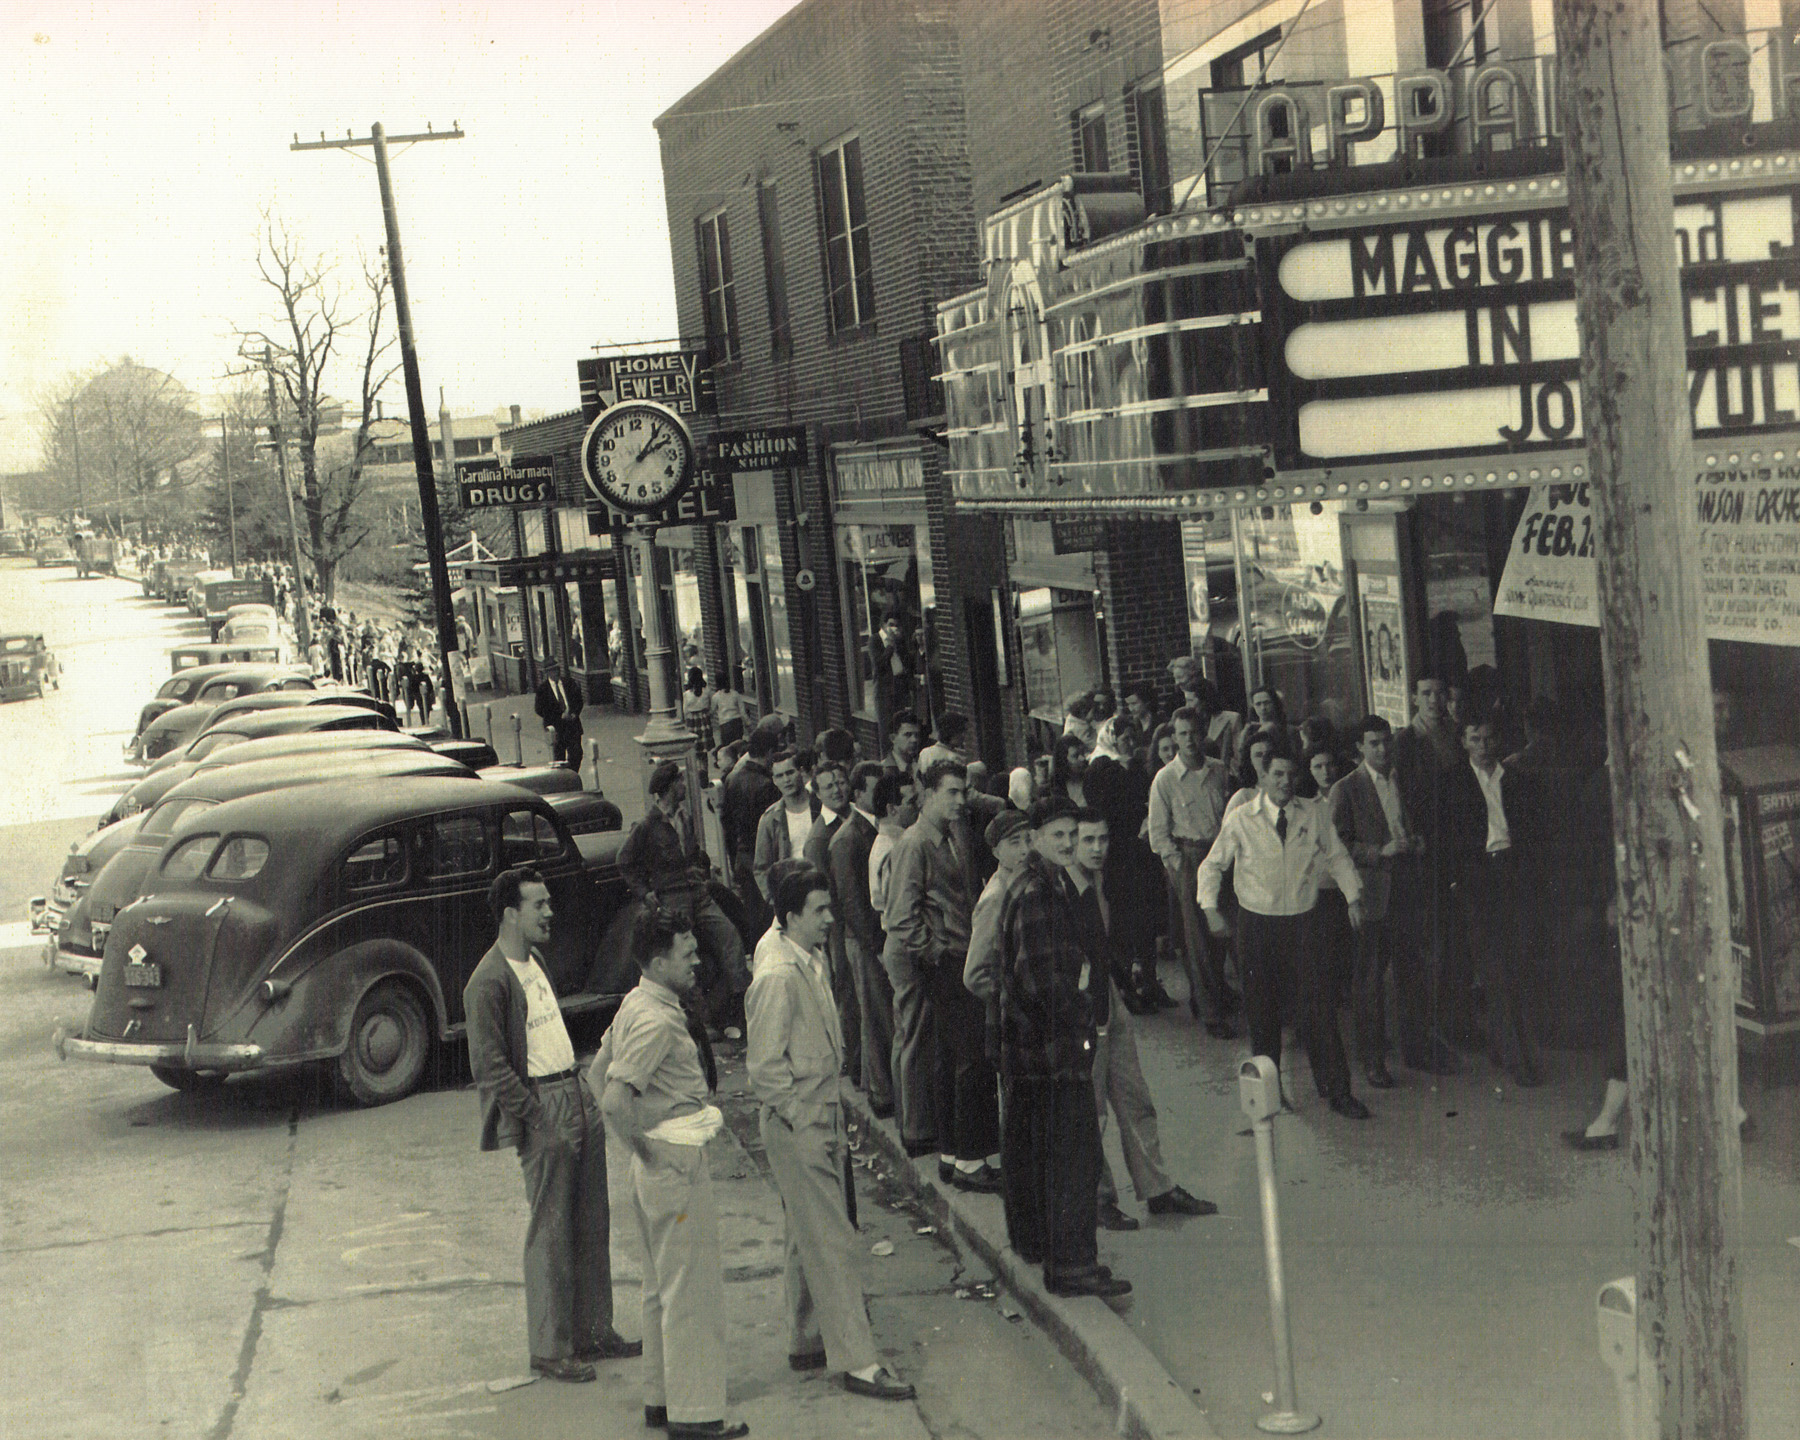 Patrons line up at the Appalachian Theatre, February 19, 1948. Image courtesy of the Sams Family.